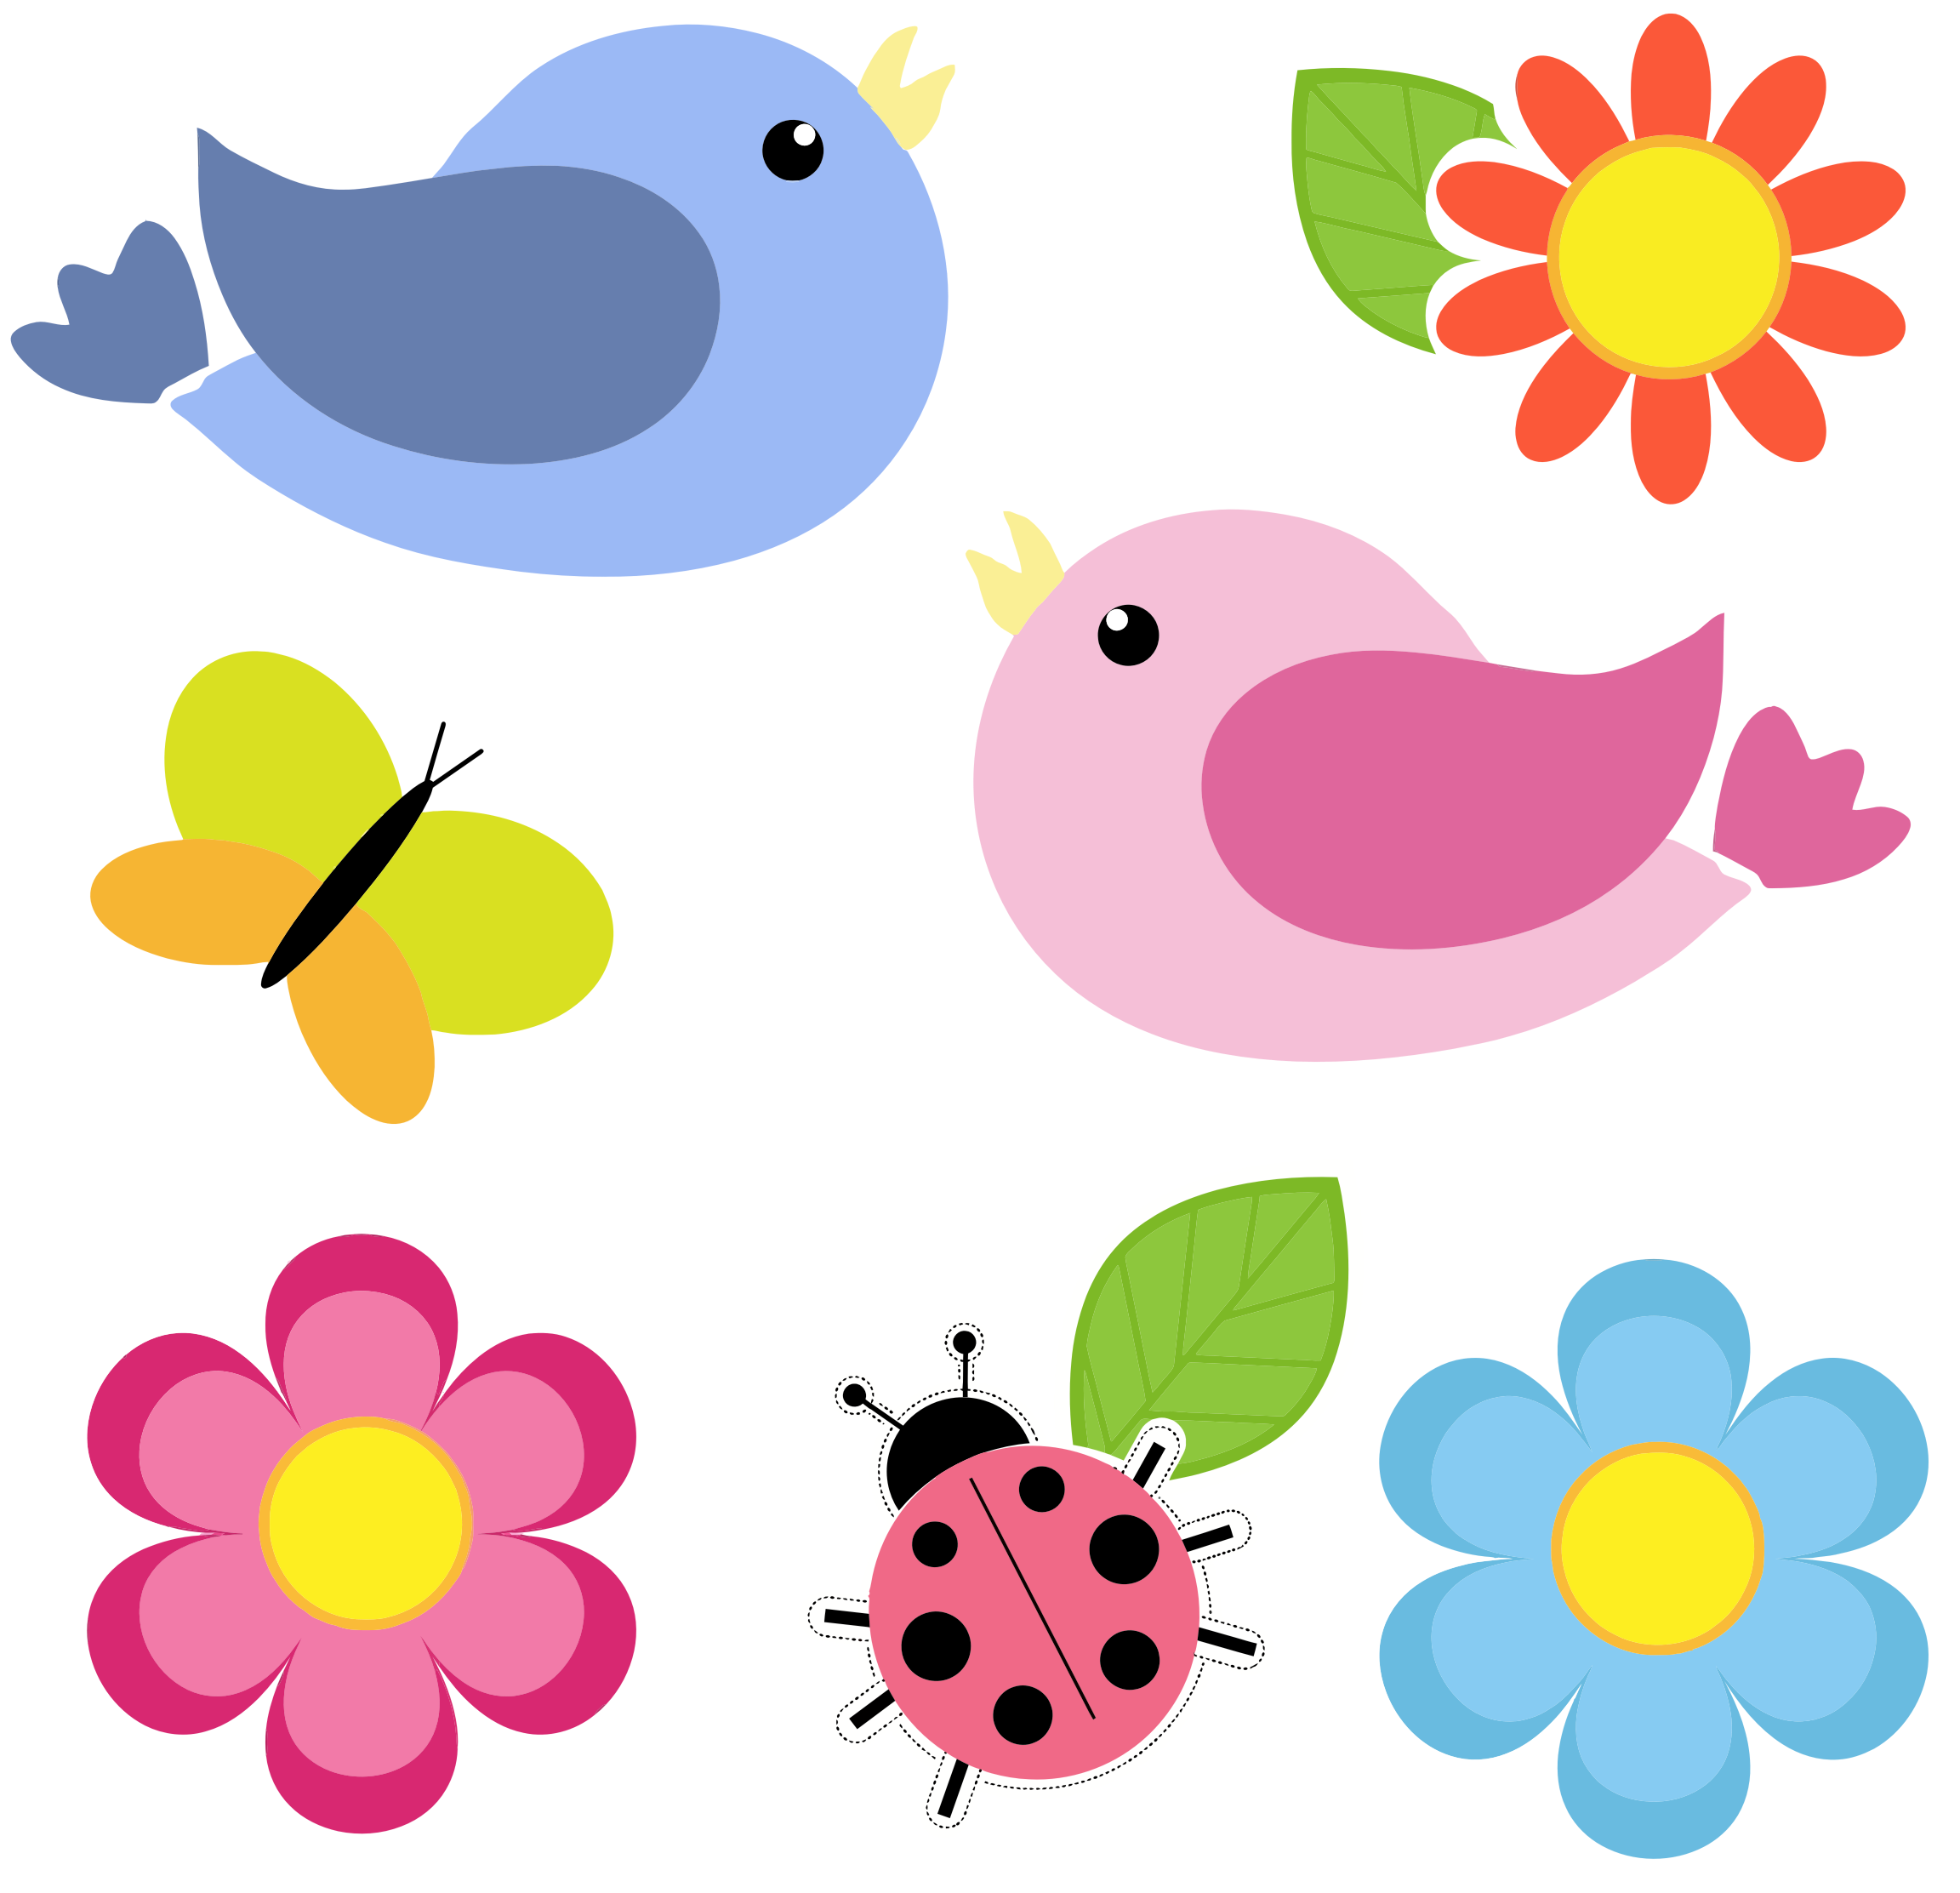 Butterfly on flower clipart vector royalty free stock Birds Butterfly Ladybug And Flowers No Background by @GDJ, Birds ... vector royalty free stock